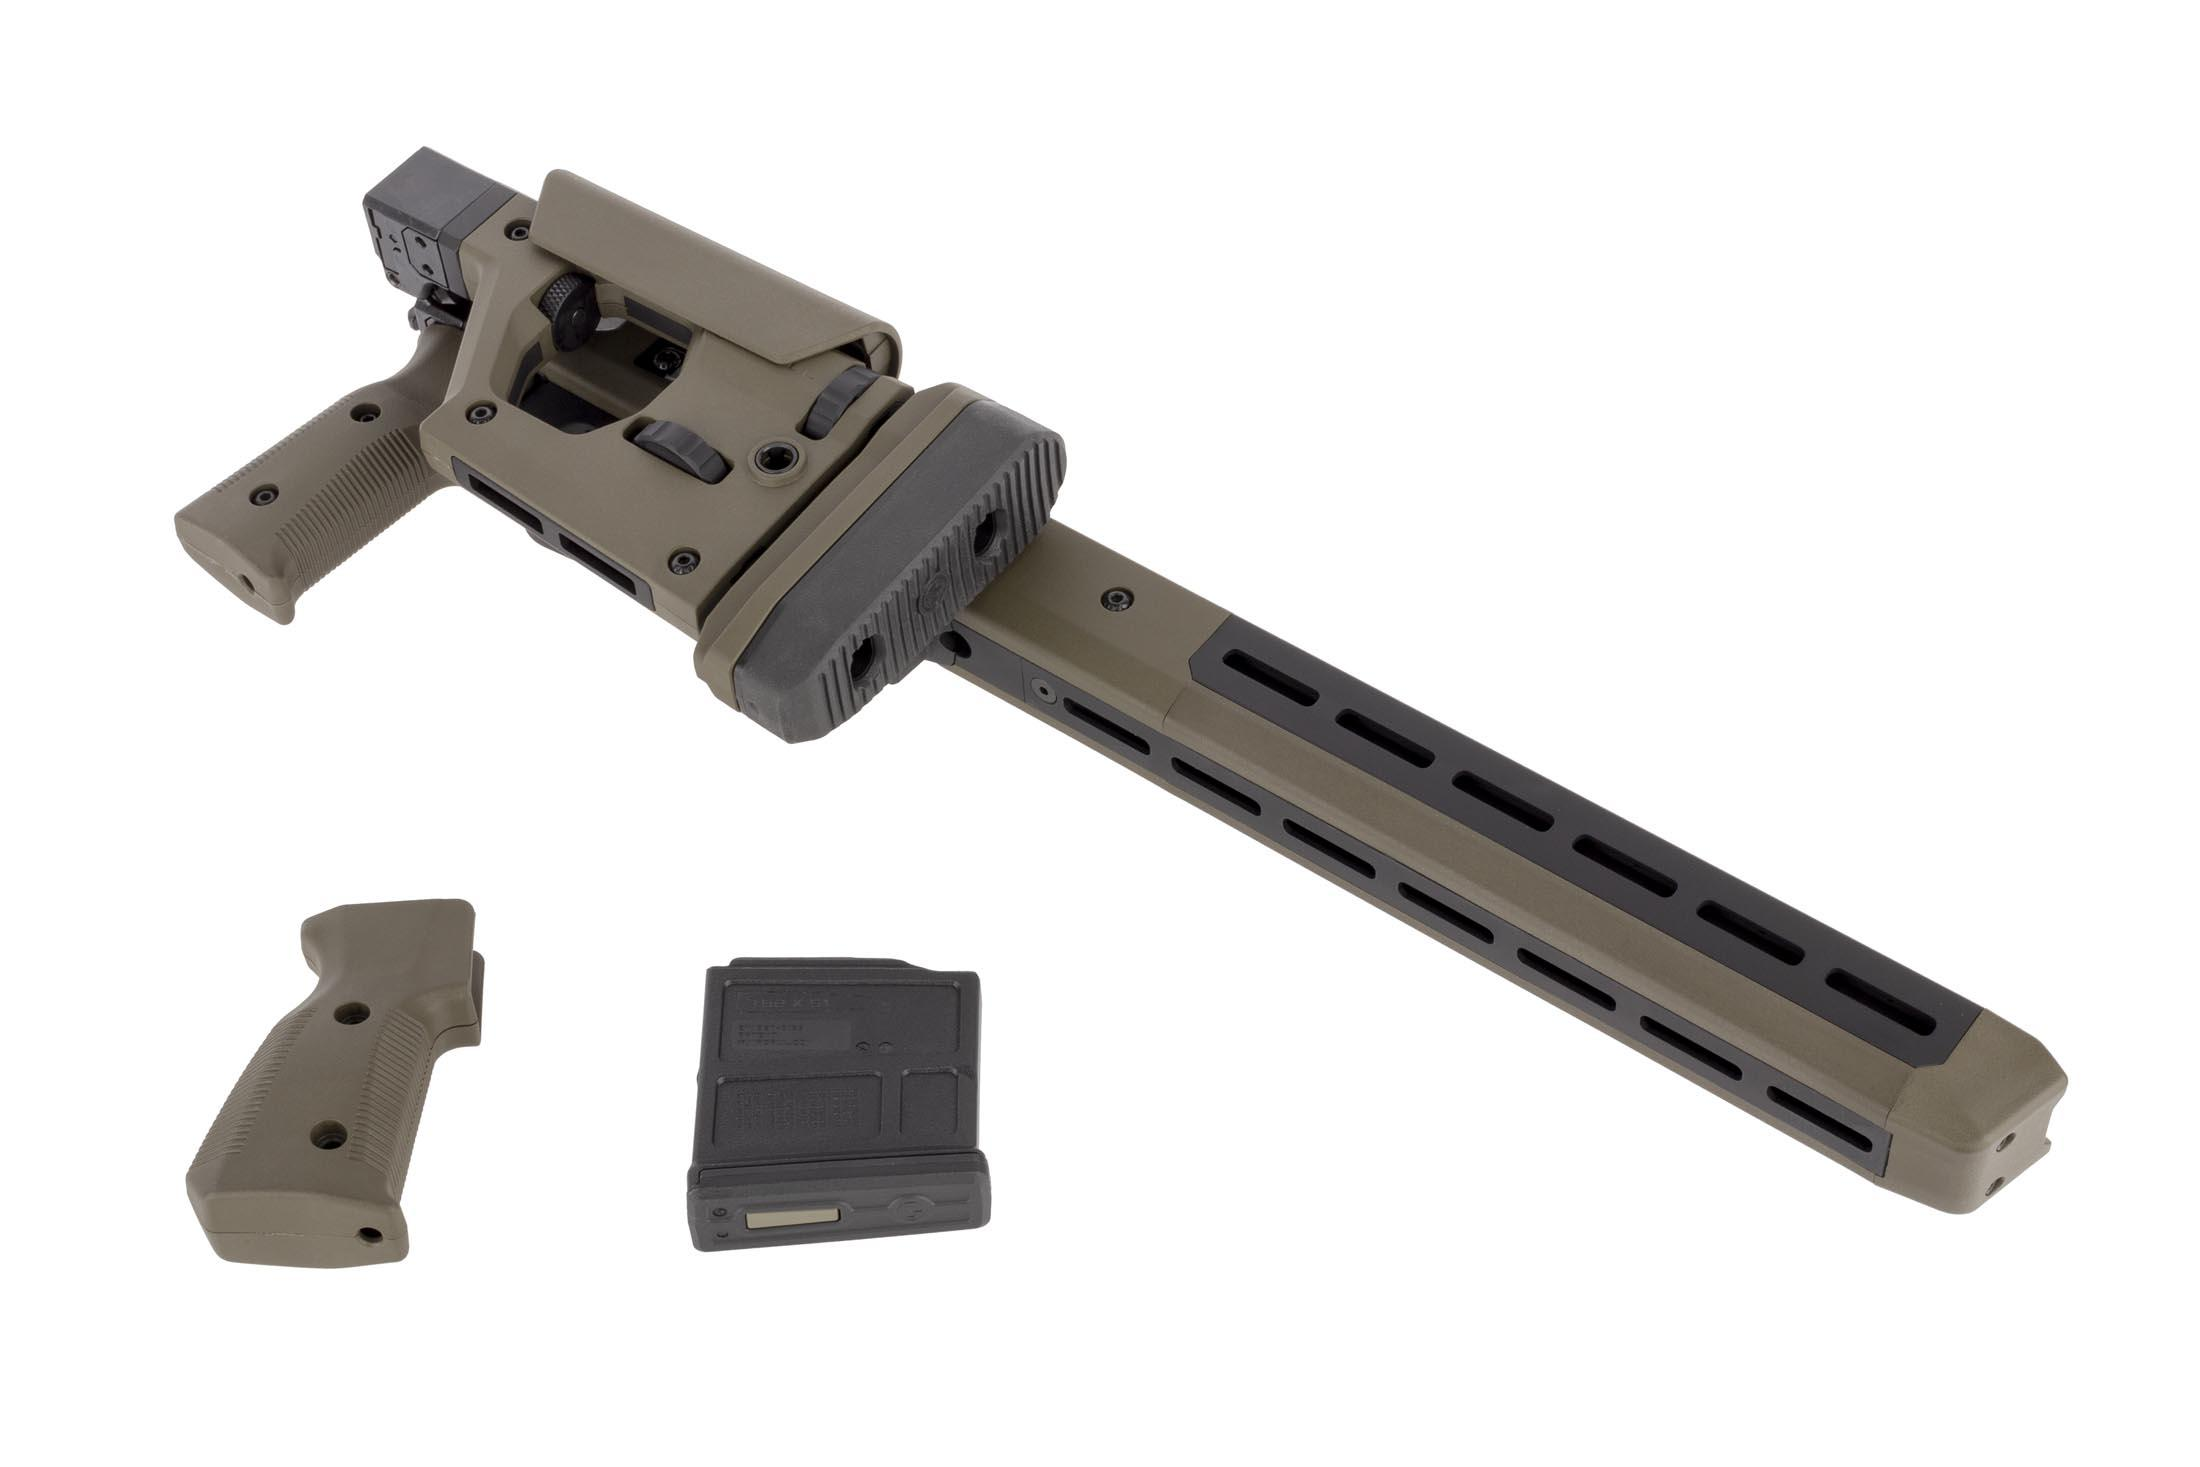 Magpul Pro 700 ODG Remington 700 short action rifle chassis is M-LOK compatible, includes an alternate grip, and a 5 round AICS mag.